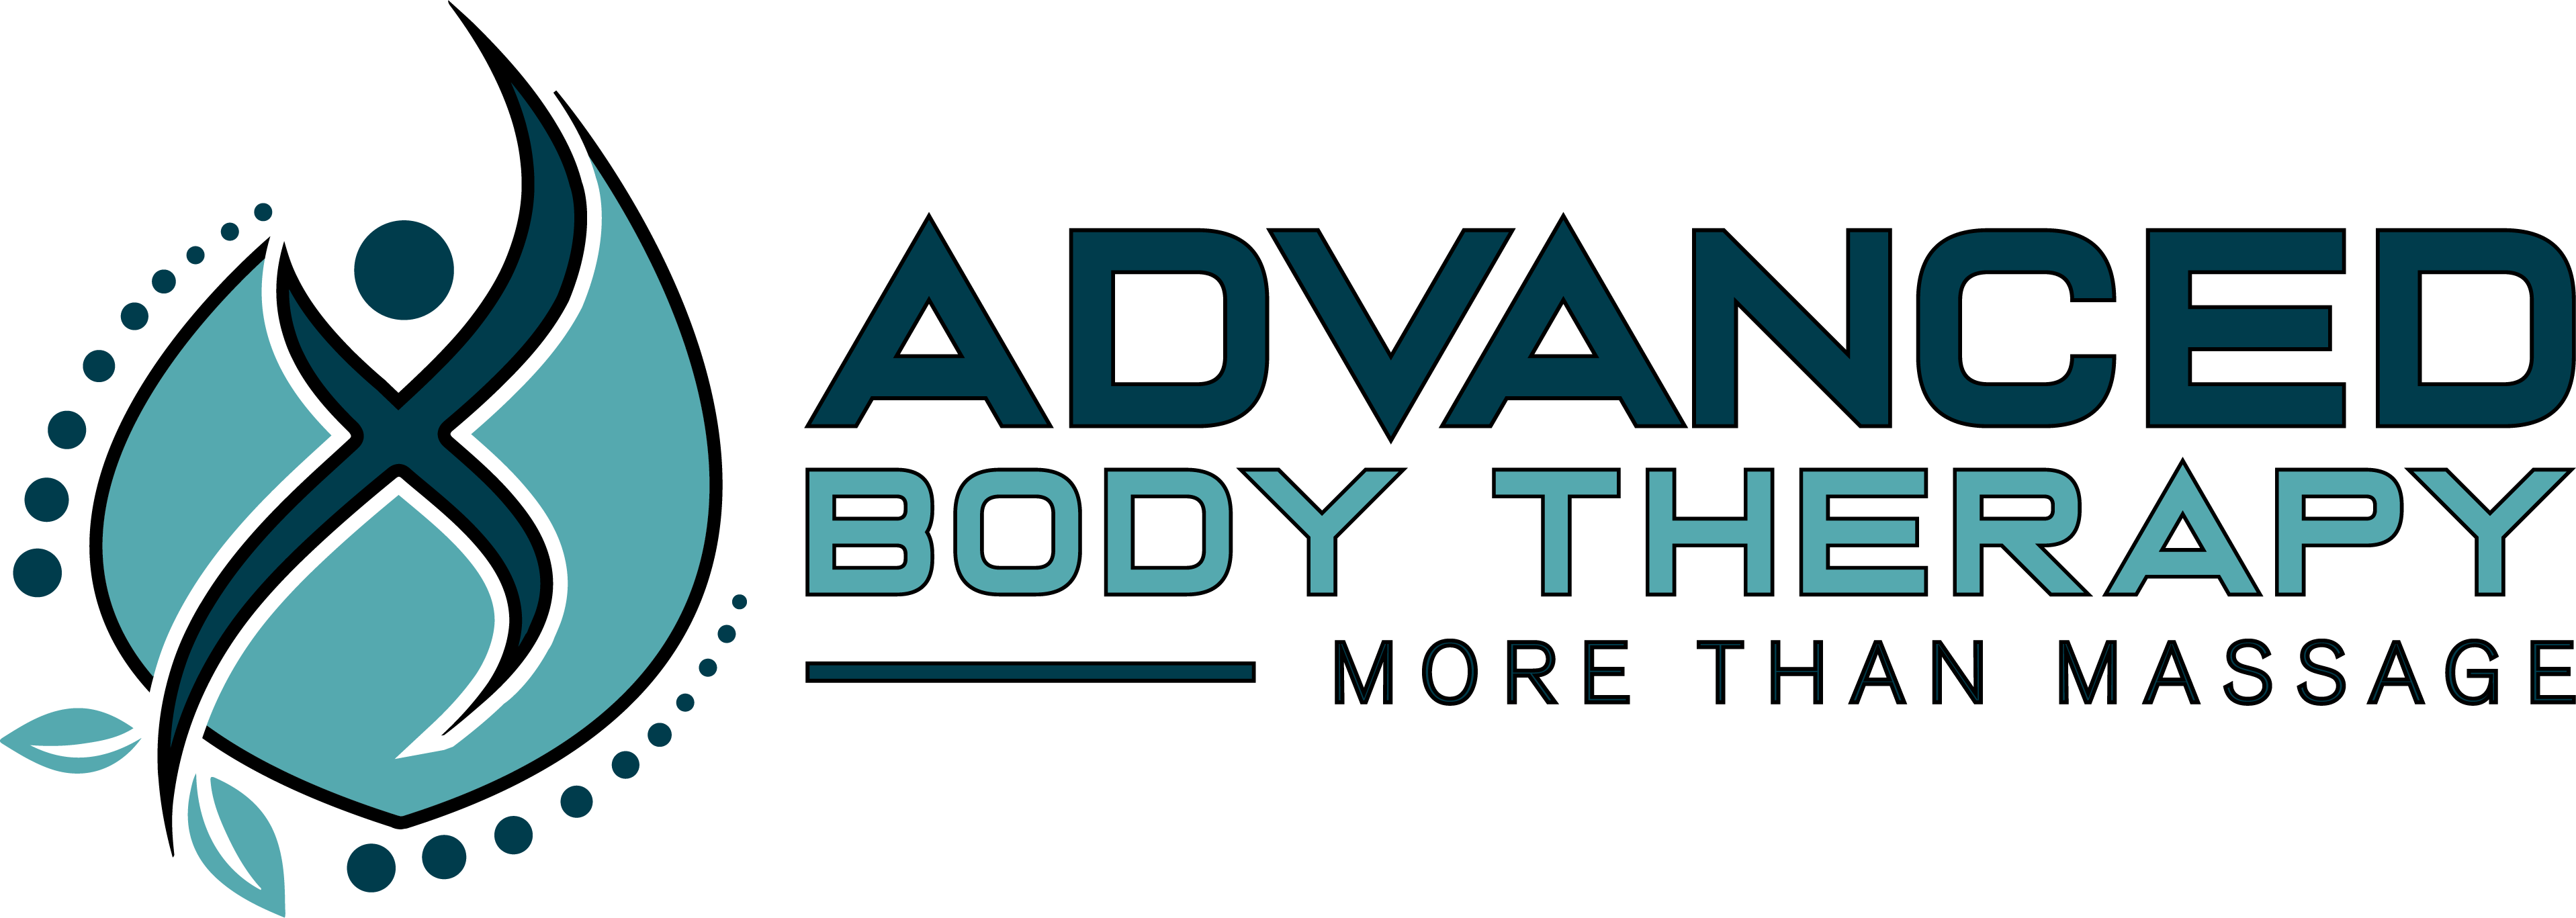 Advanced Body Therapy